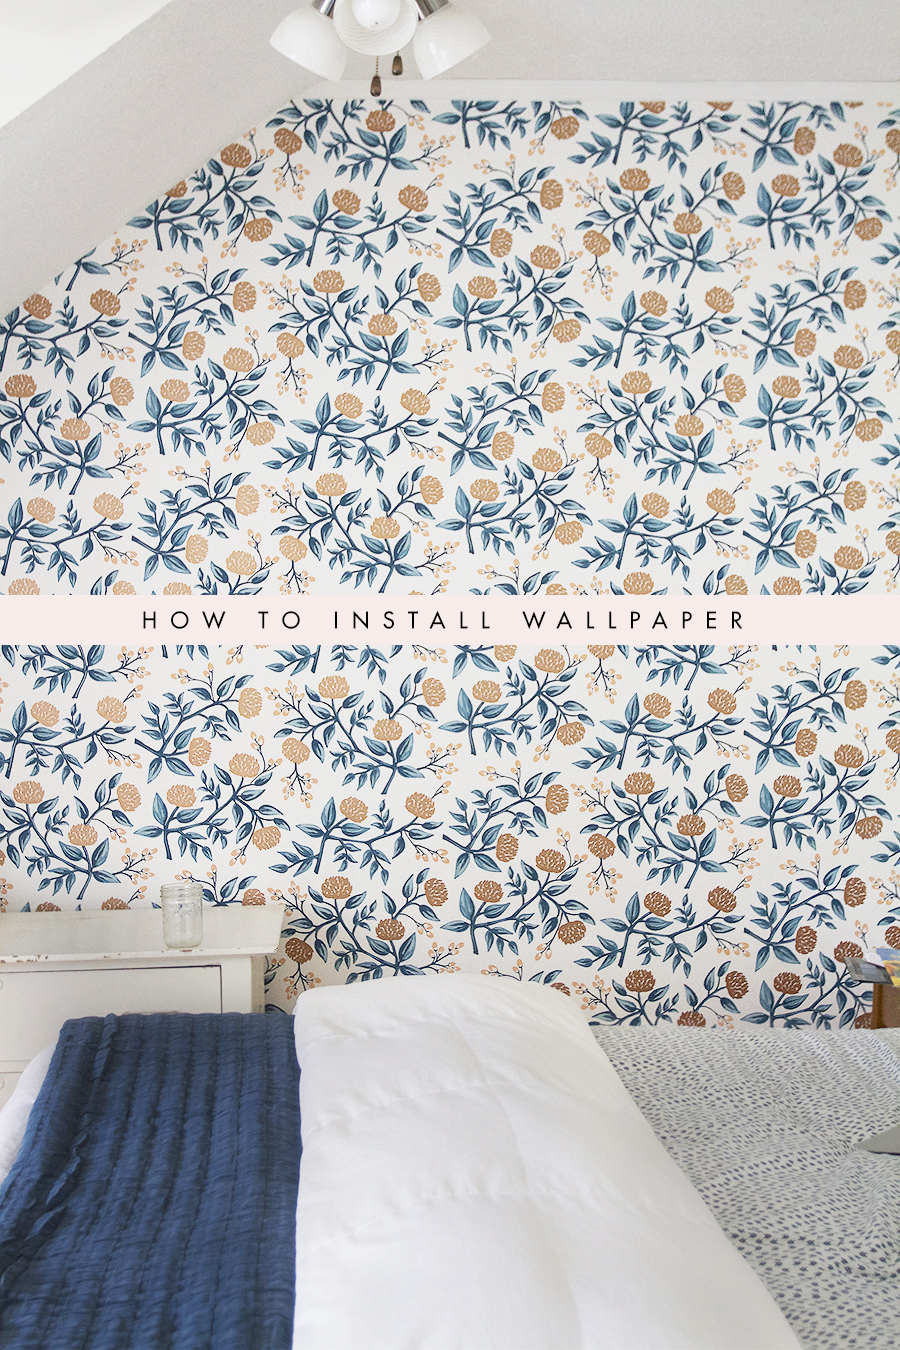 Wallpapering Patterned Paper